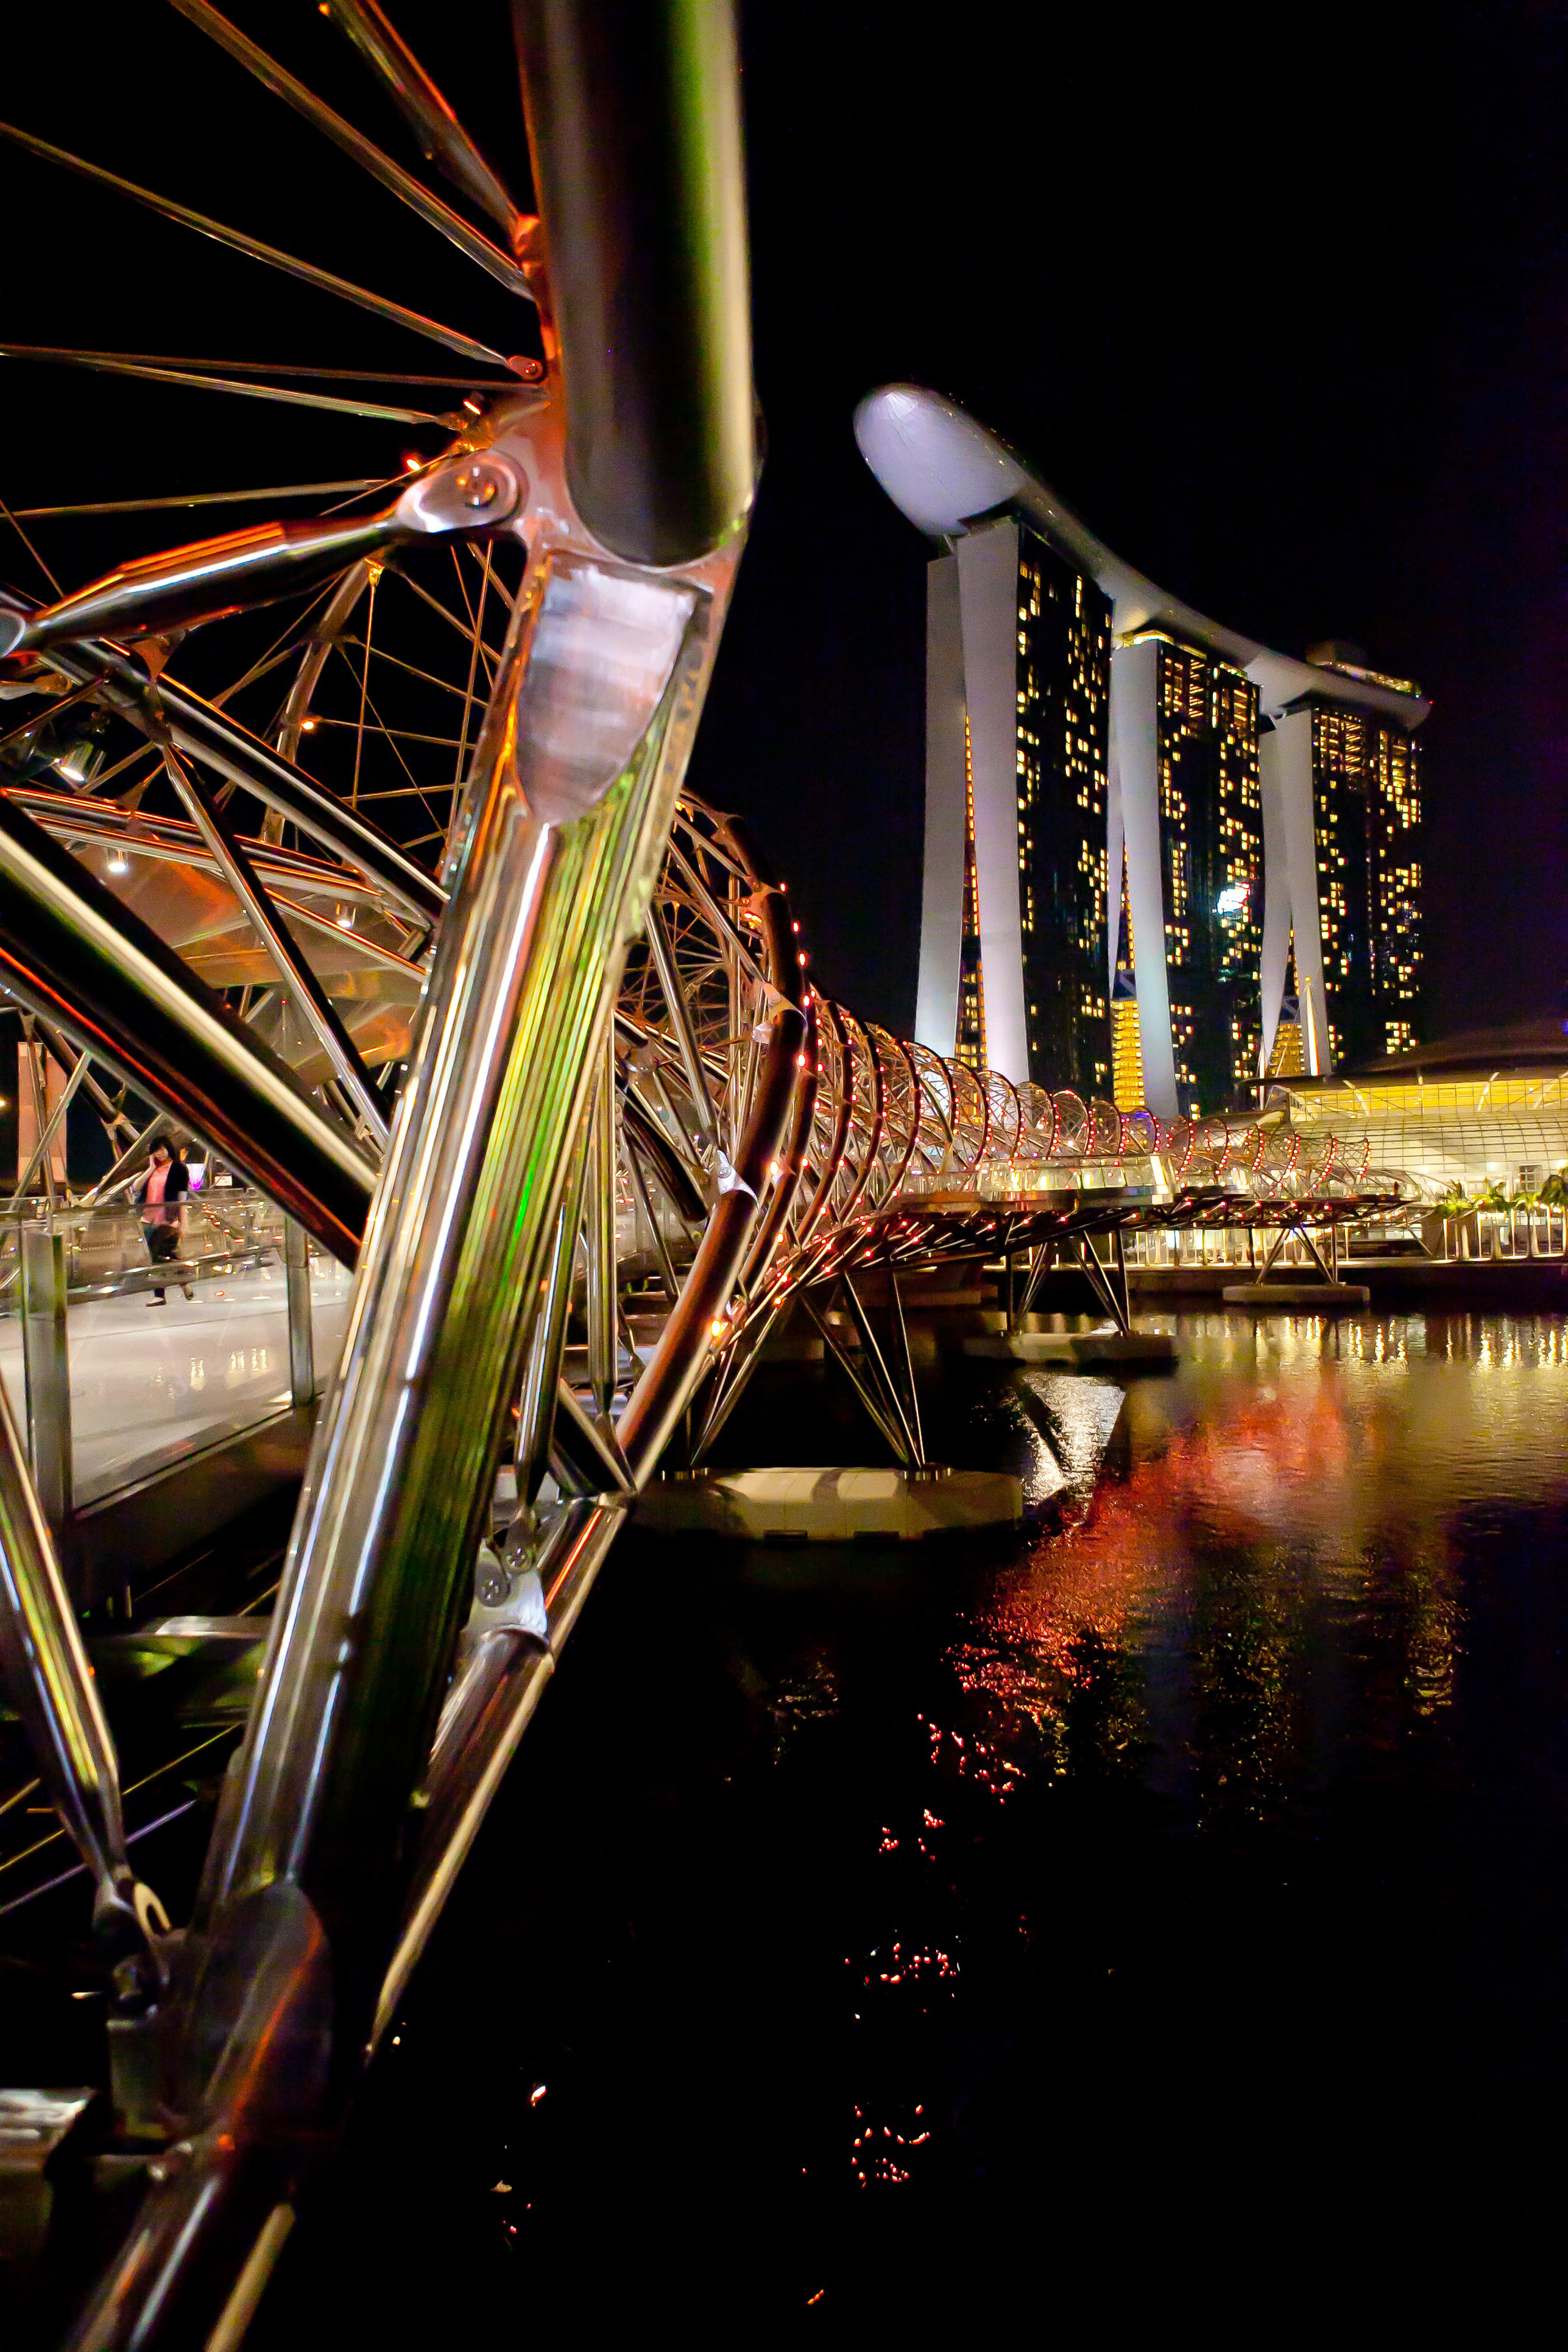 Stock Chart Singapore: Bridge architecture at Night in Singapore - Free Public Domain ,Chart